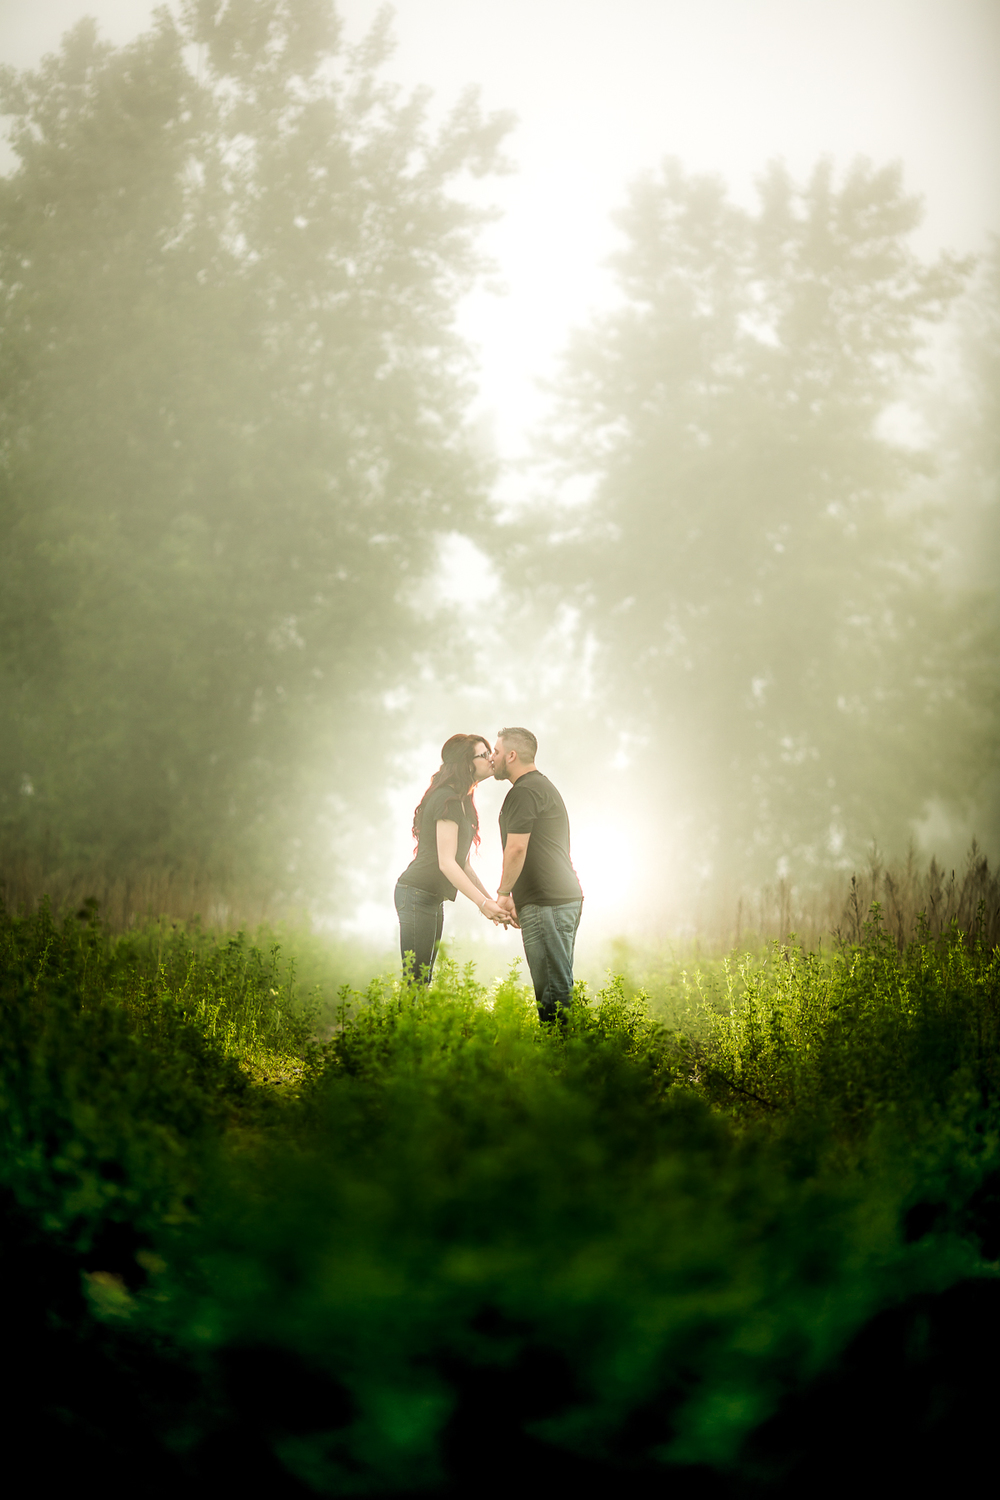 Samantha & Matt-94-Edit.jpg